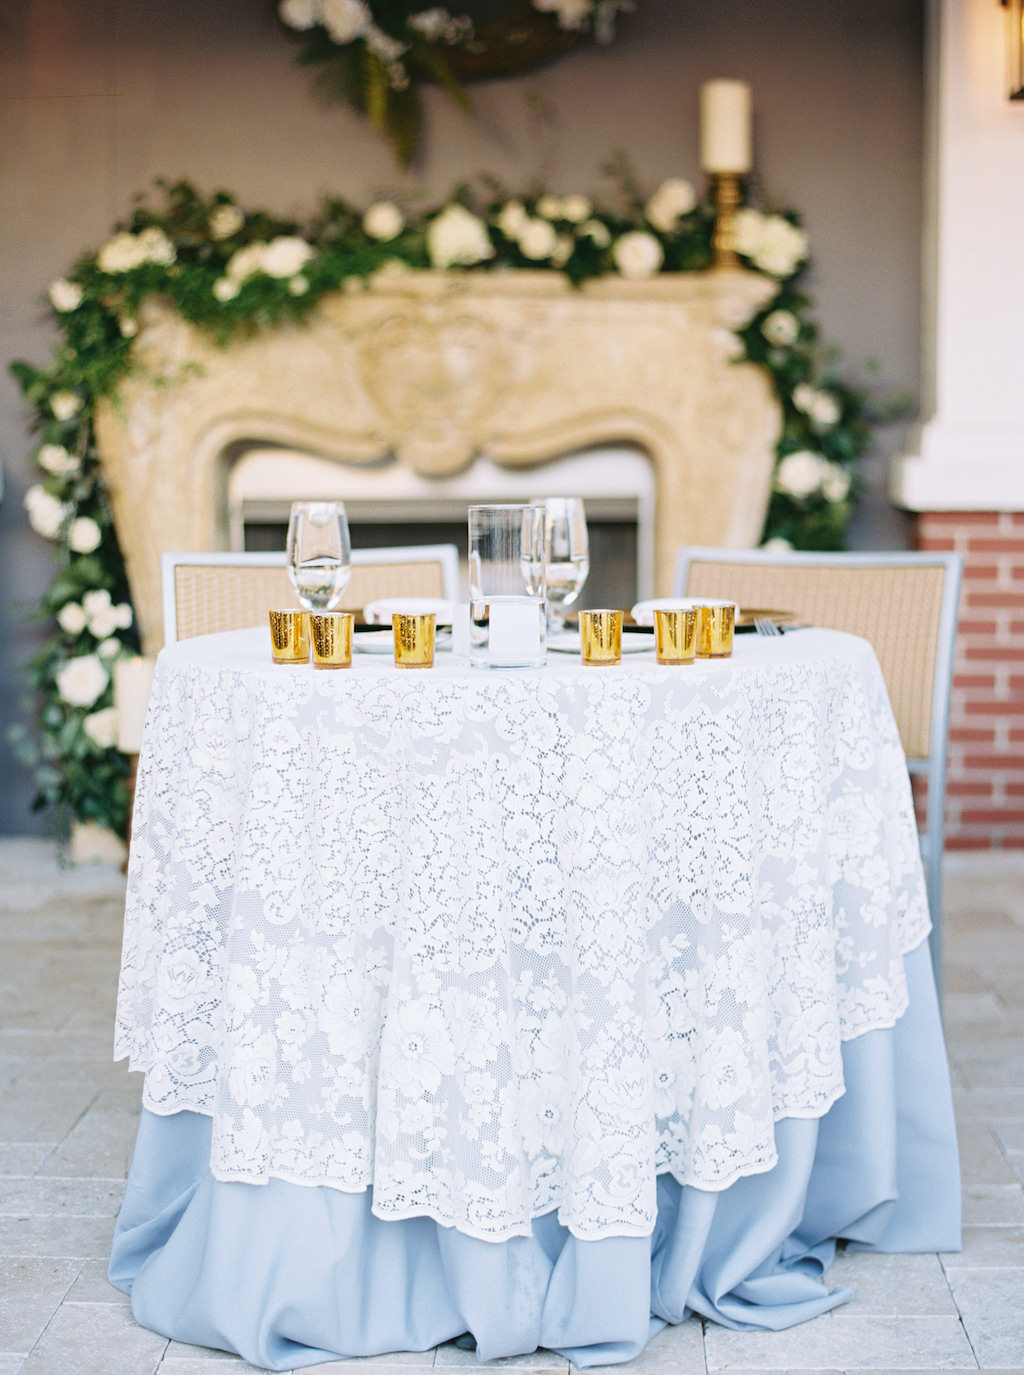 Garden Inspired Wedding Reception Decor, Sweetheart Table with Dusty Blue and White Lace Tablecloths, Gold Mercury Votives | Florida Wedding Venue Palmetto Riverside Bed and Breakfast